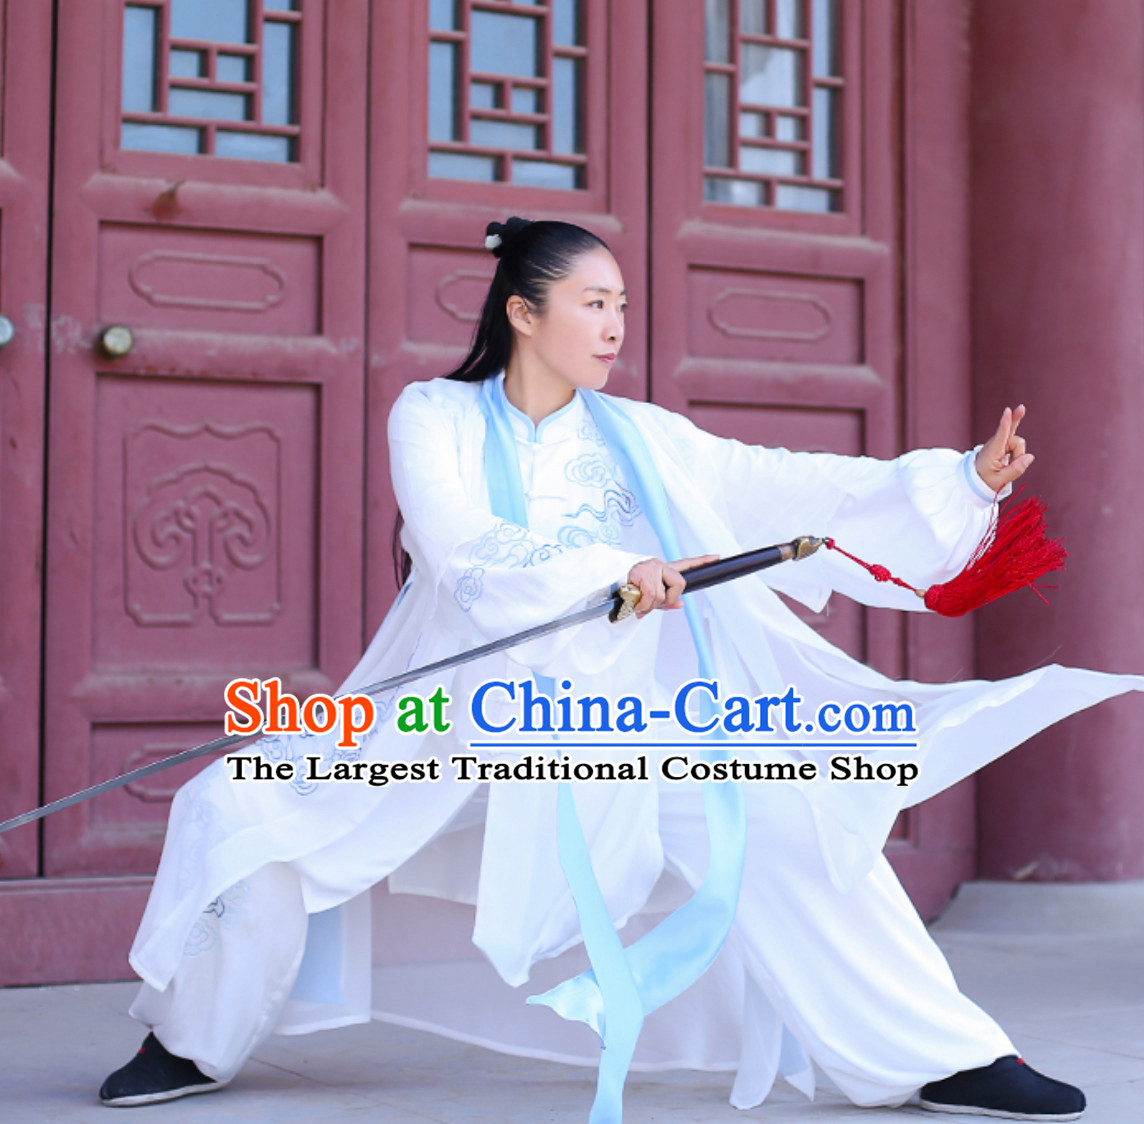 Top Chinese Traditional Competition Championship Tai Chi Taiji Kung Fu Master Suit Dresses Complete Set